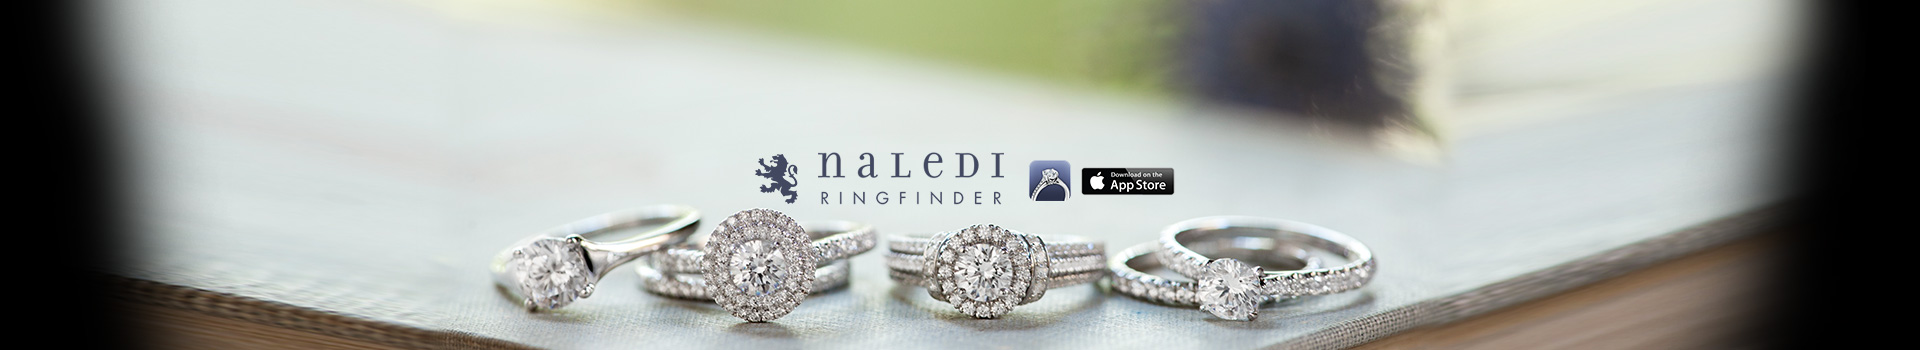 Engagement_Slider_Naledi1